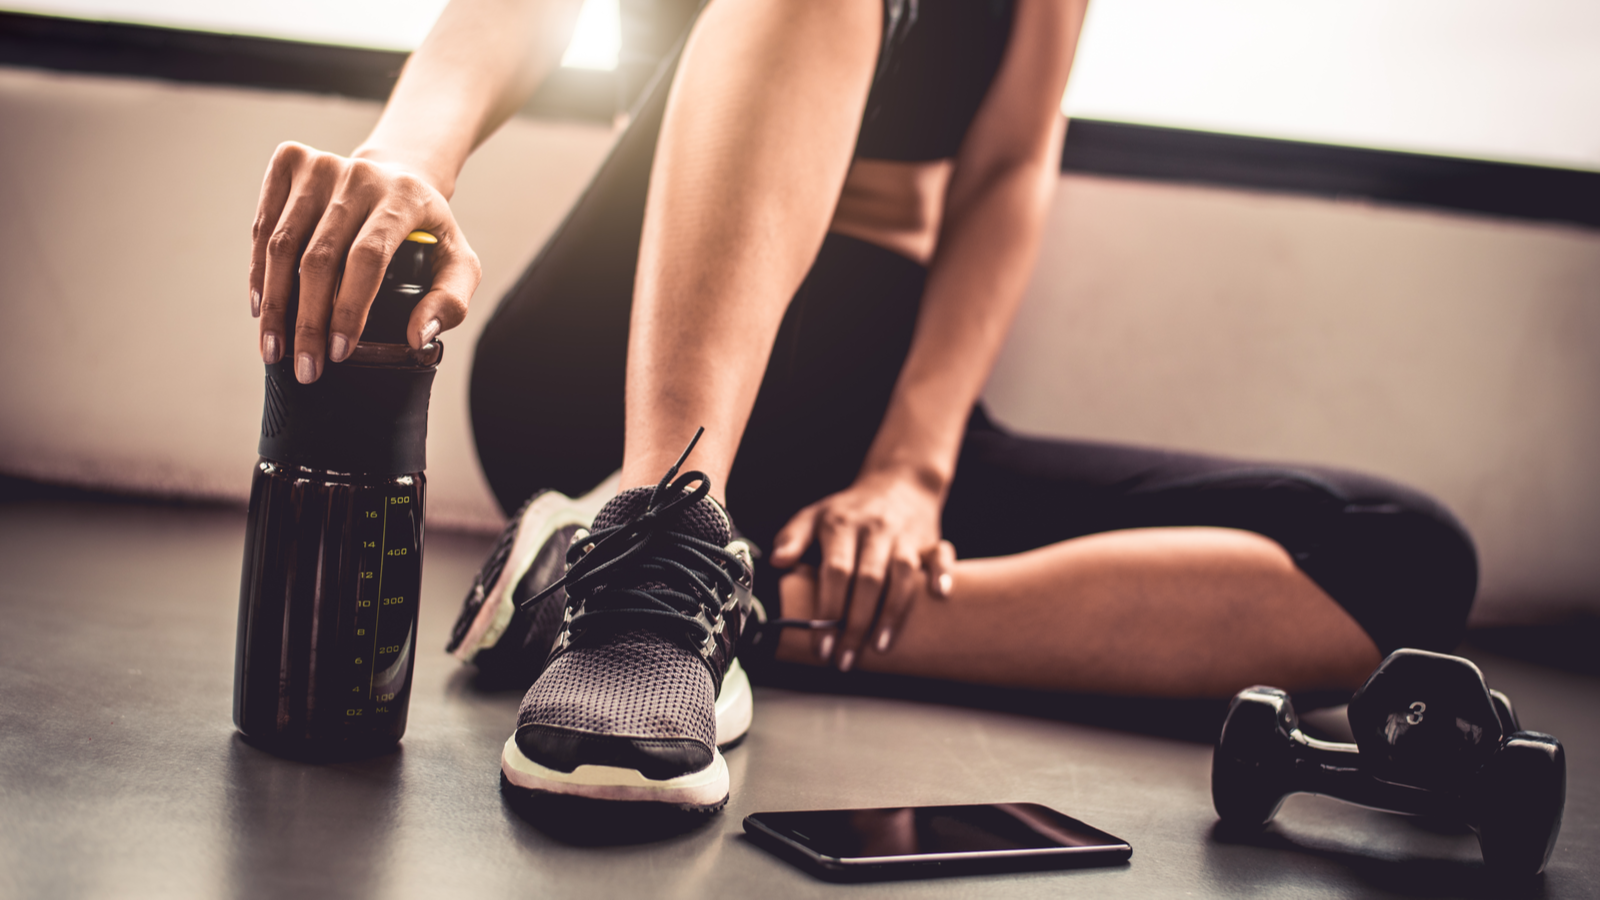 A woman sitting on the floor next to dumbbells and a smartphone, her hand resting on a water bottle.